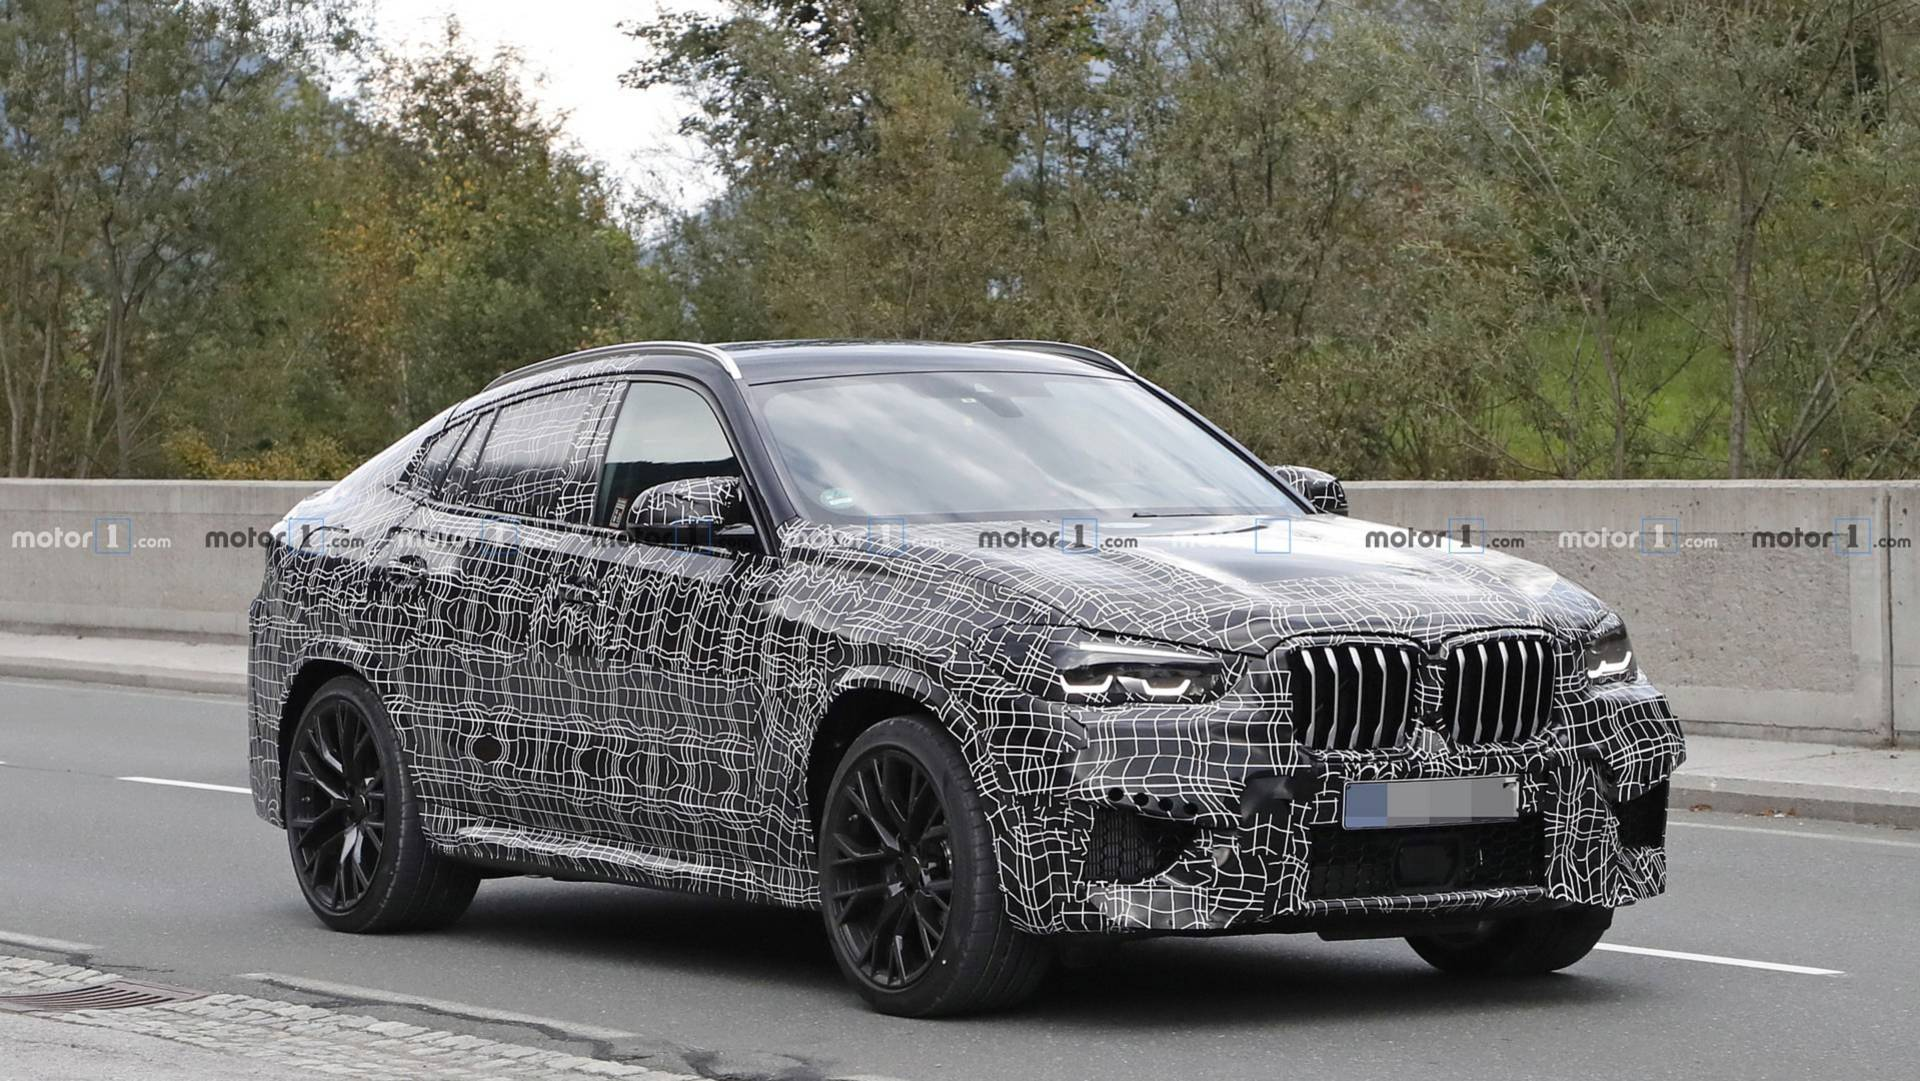 New Bmw X6 M Looks Menacing In First Spy Shots